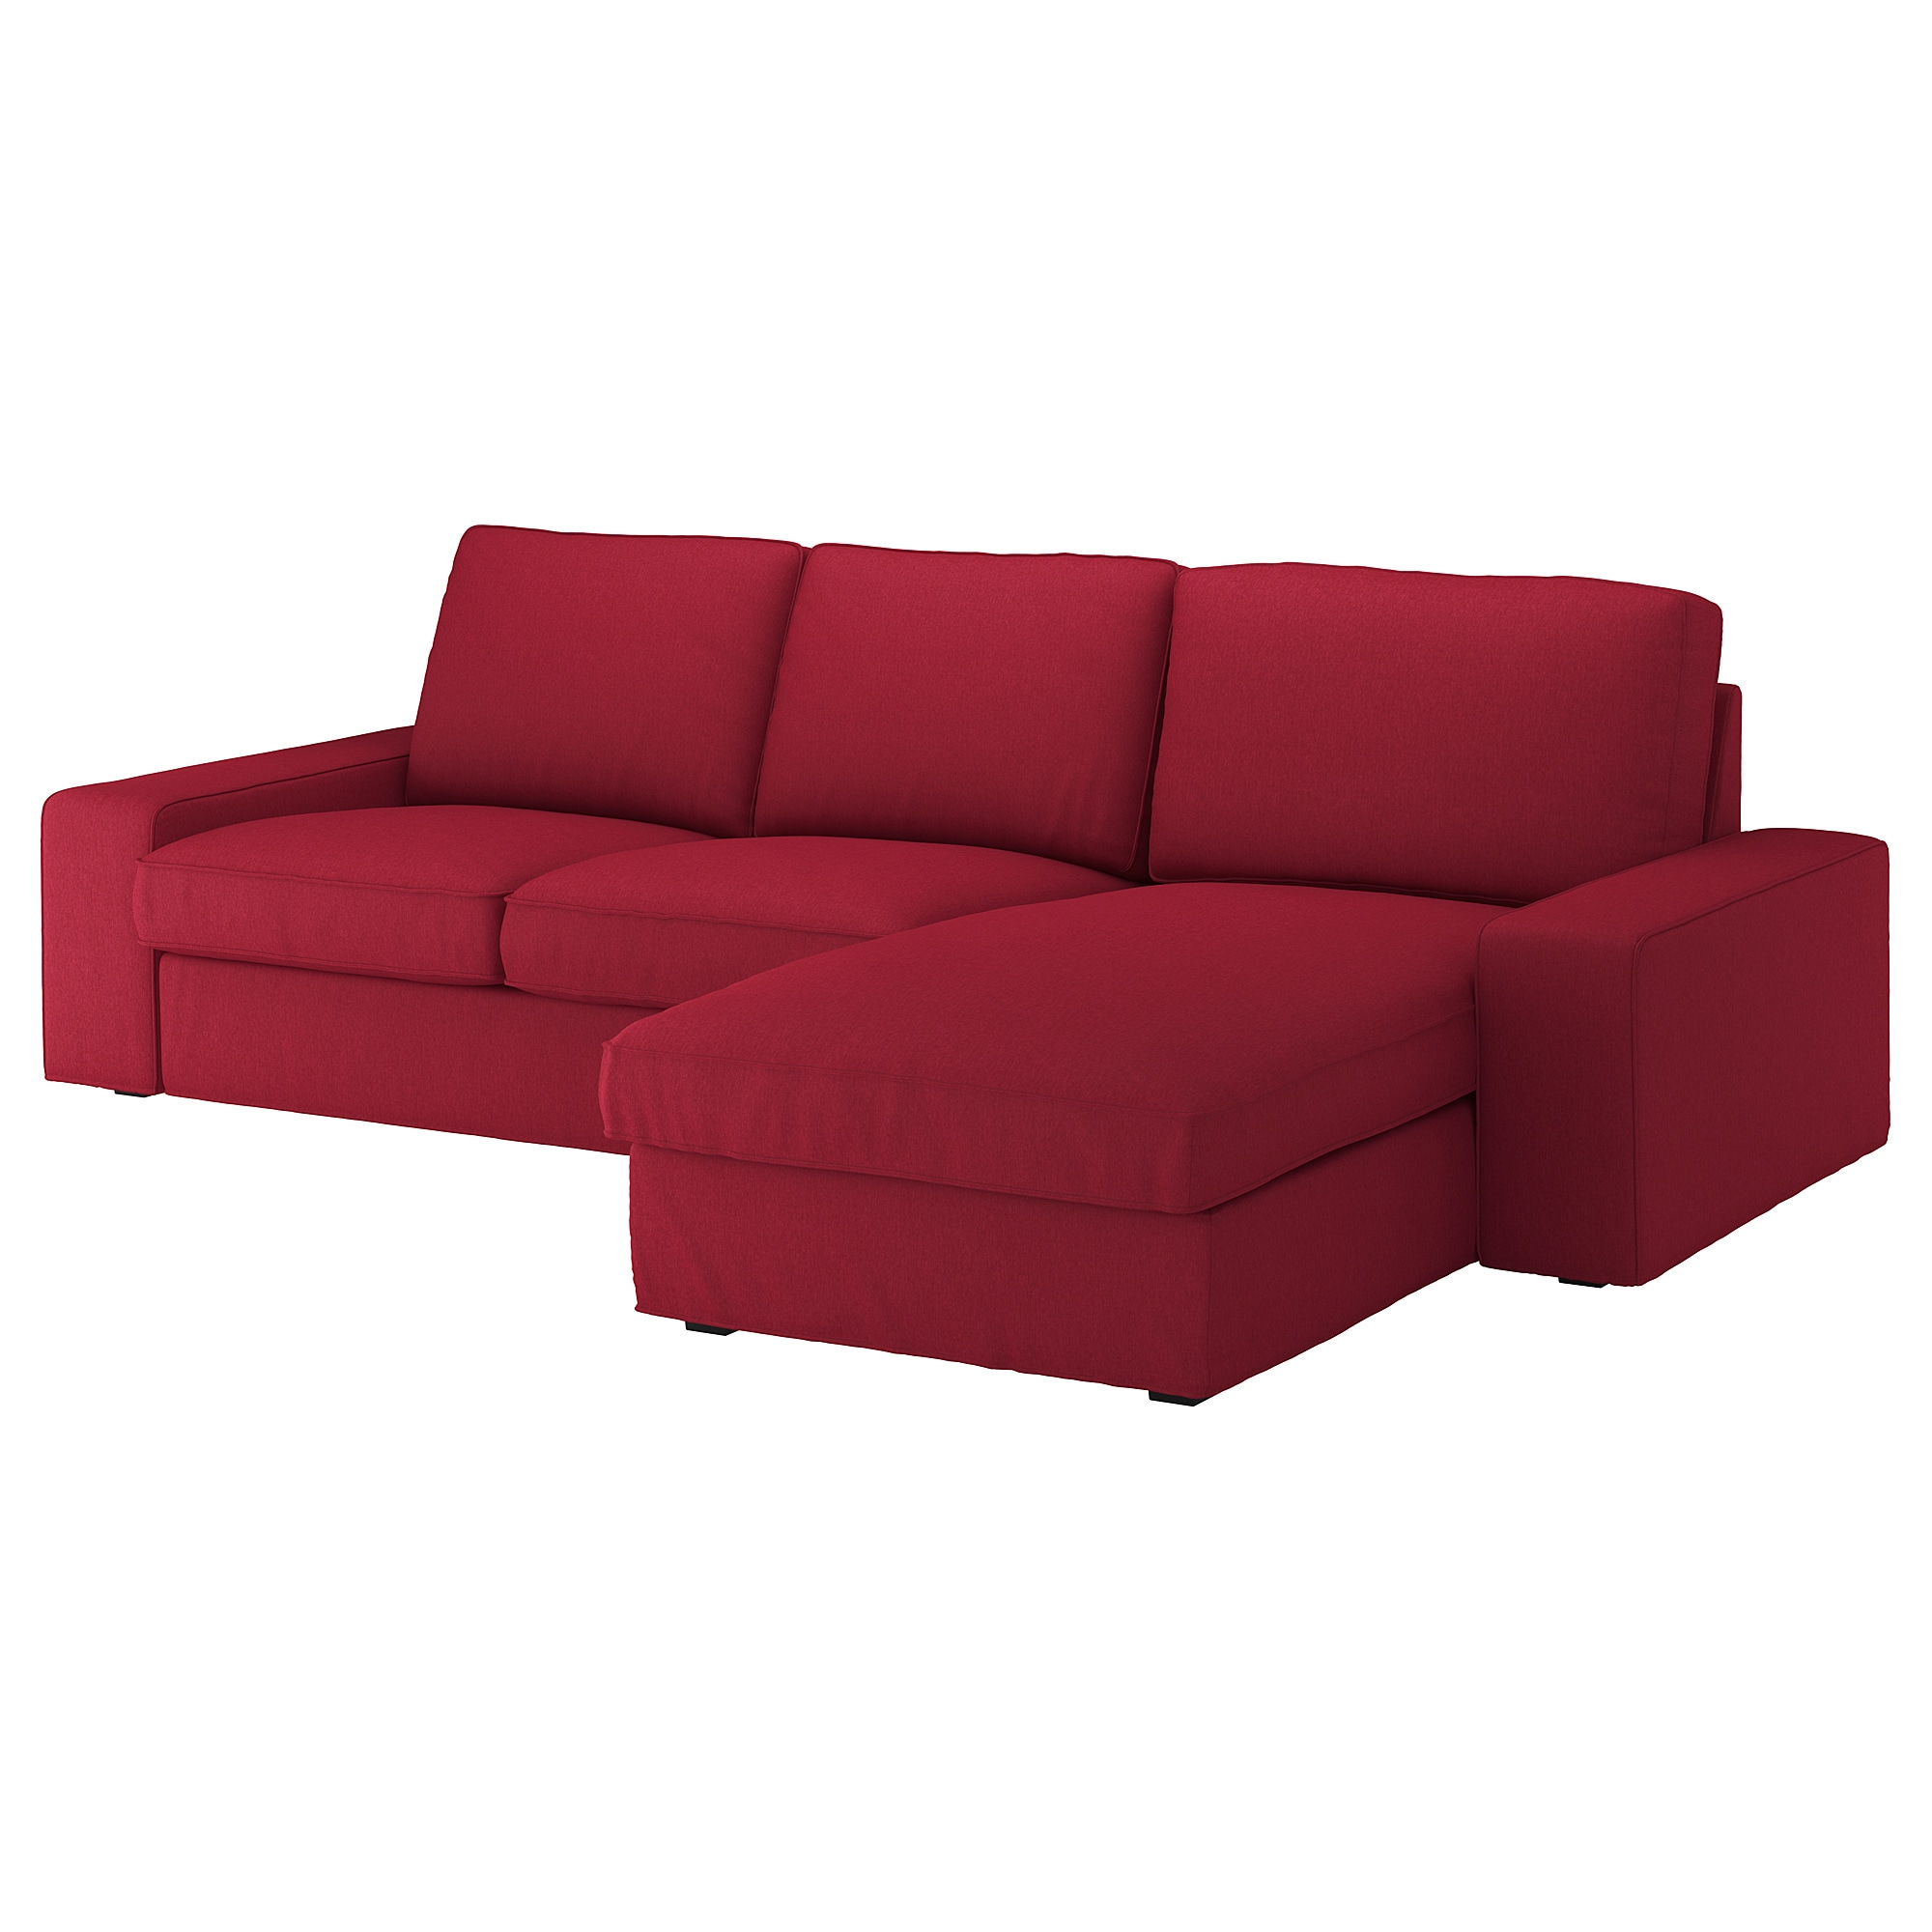 KIVIK Sofa with chaise Orrsta red IKEA